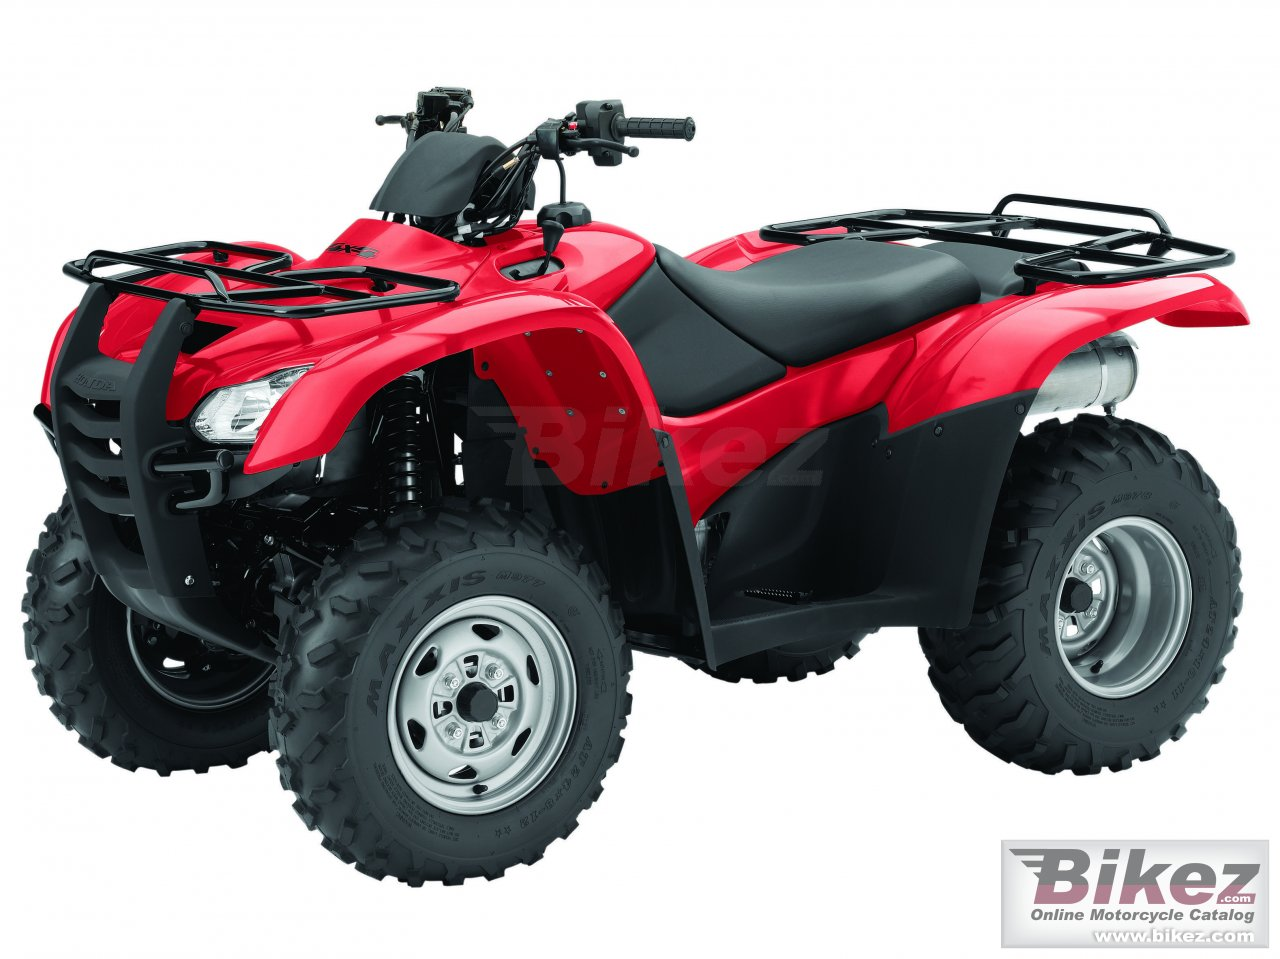 Big Honda trx420fm picture and wallpaper from Bikez.com